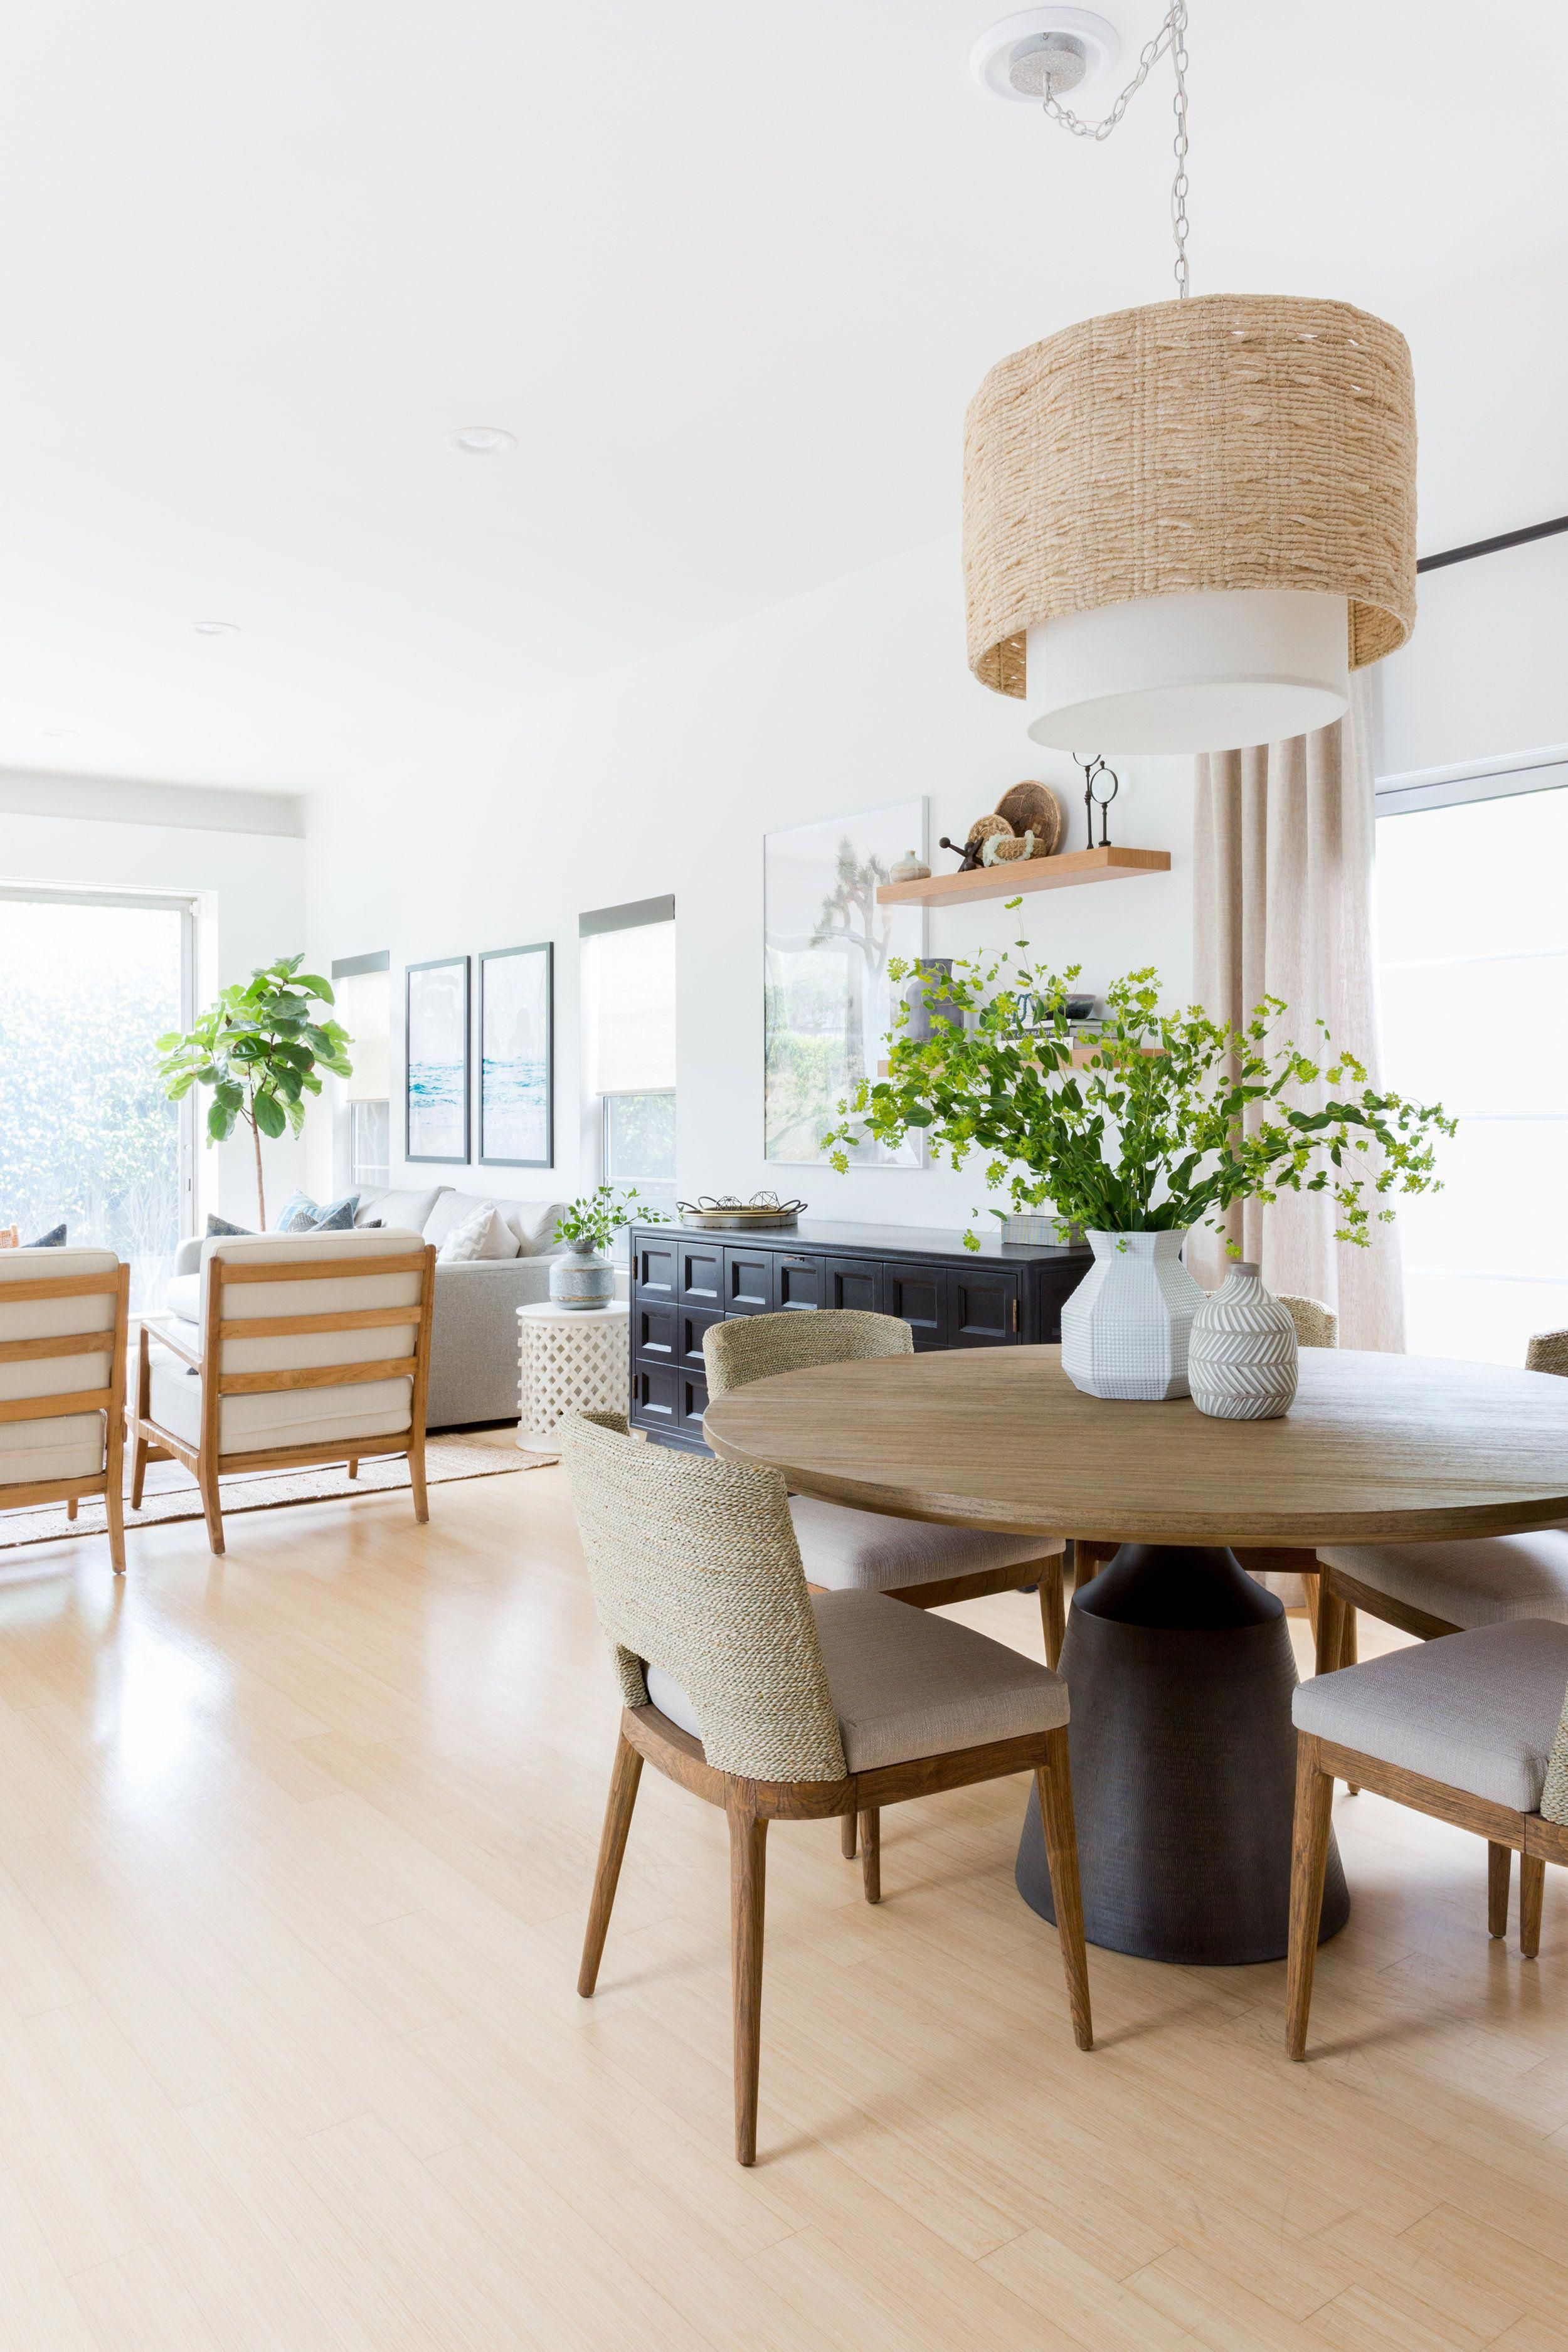 Dining Room Decorating Ideas Are So Vast That Your Room Can Have A Lot Of Potential Without Cost Casual Dining Rooms Dining Room Design Affordable Dining Room